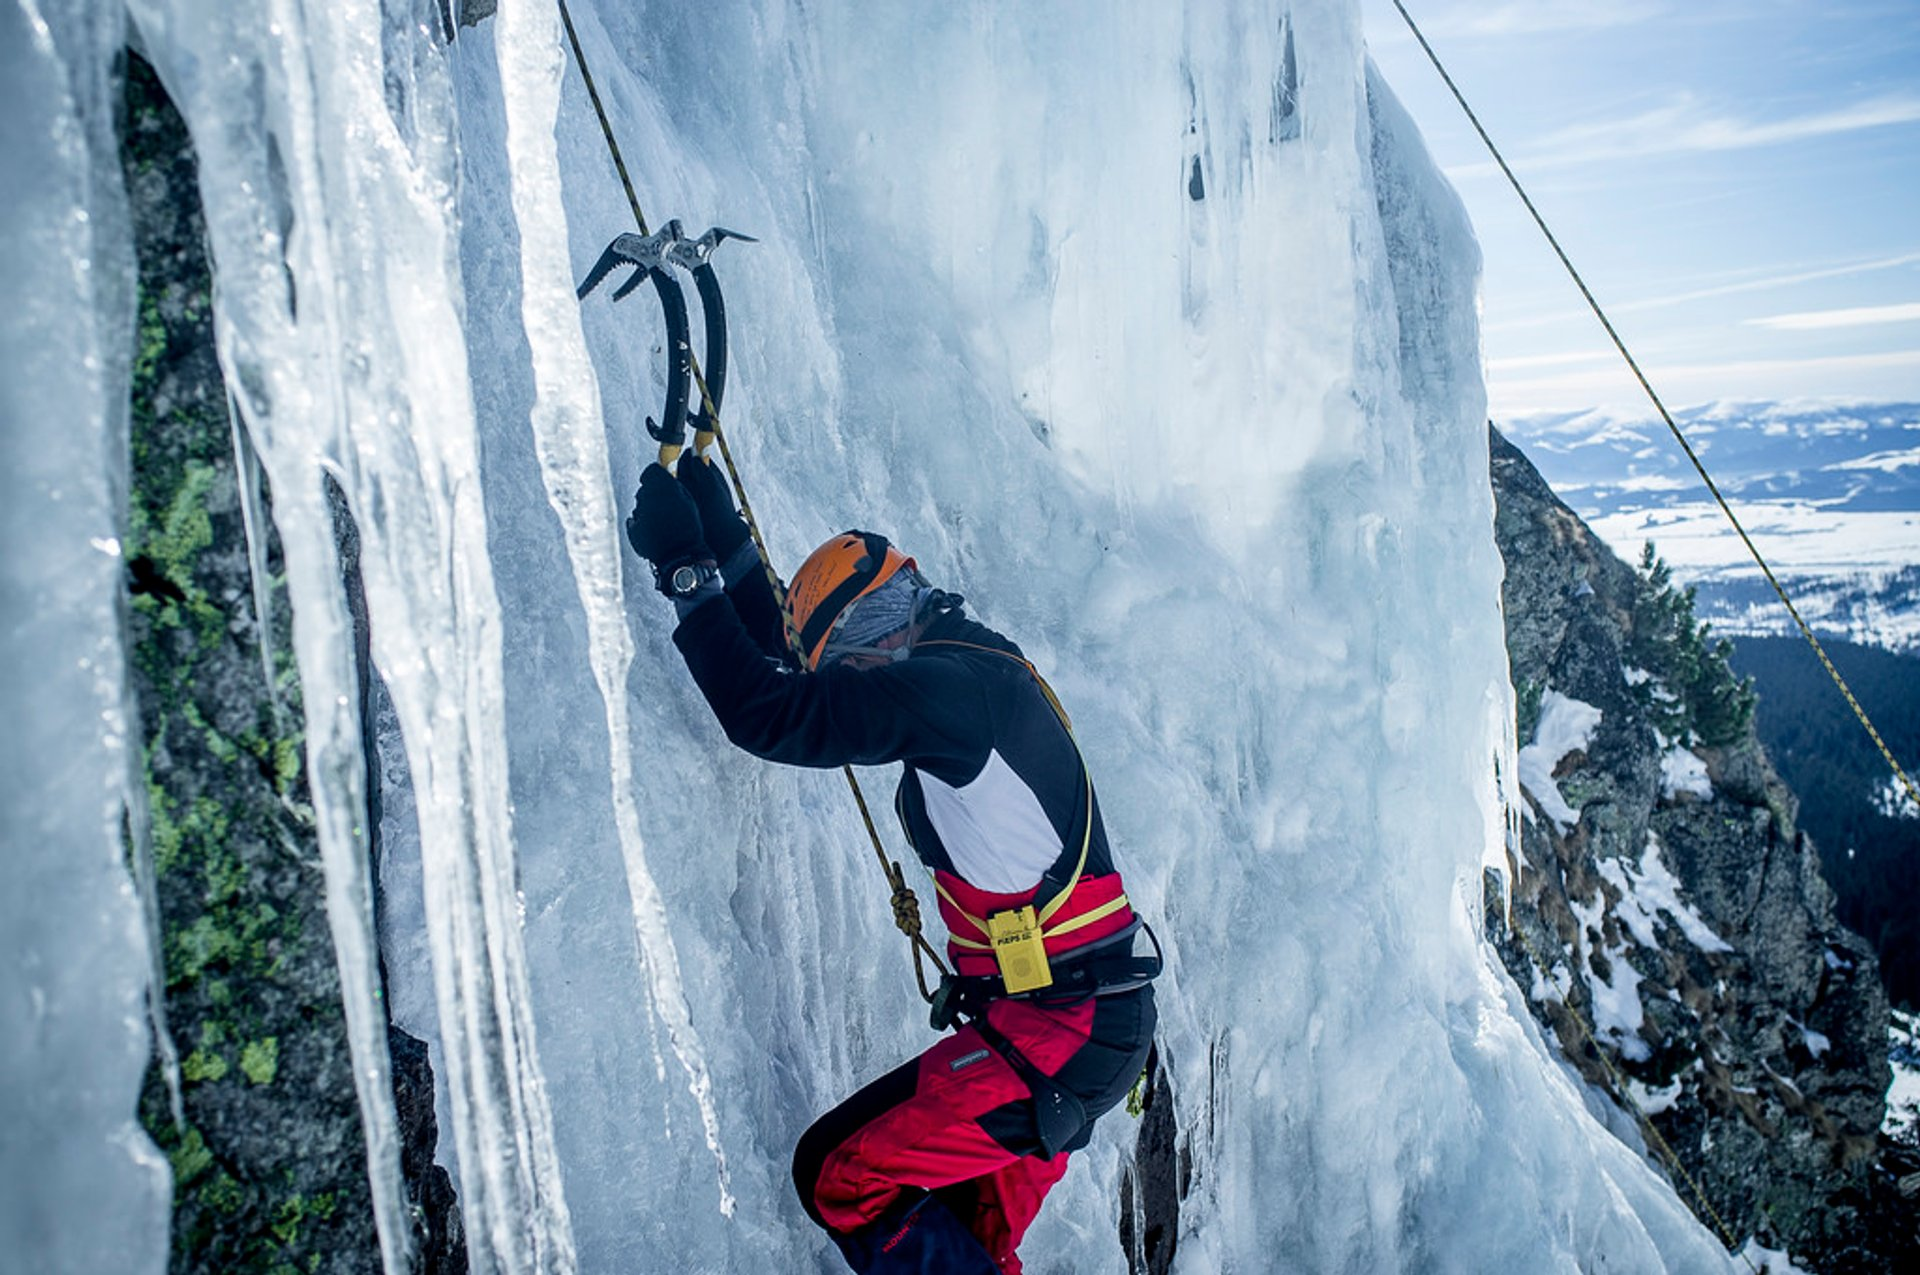 Ice climbing in the Tatra Mountains 2019